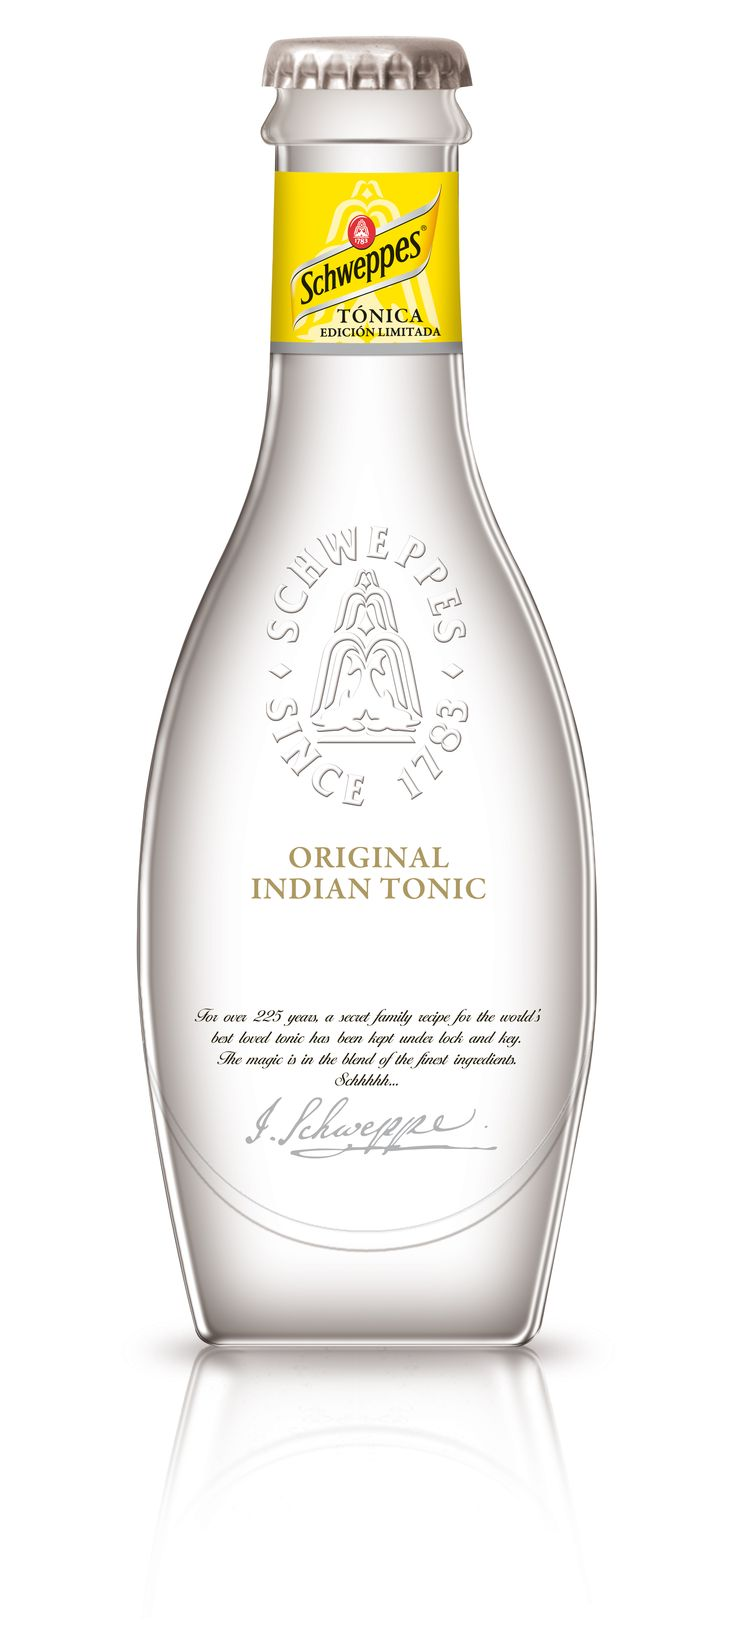 Schweppes Original Indian Tonic - now just add gin.